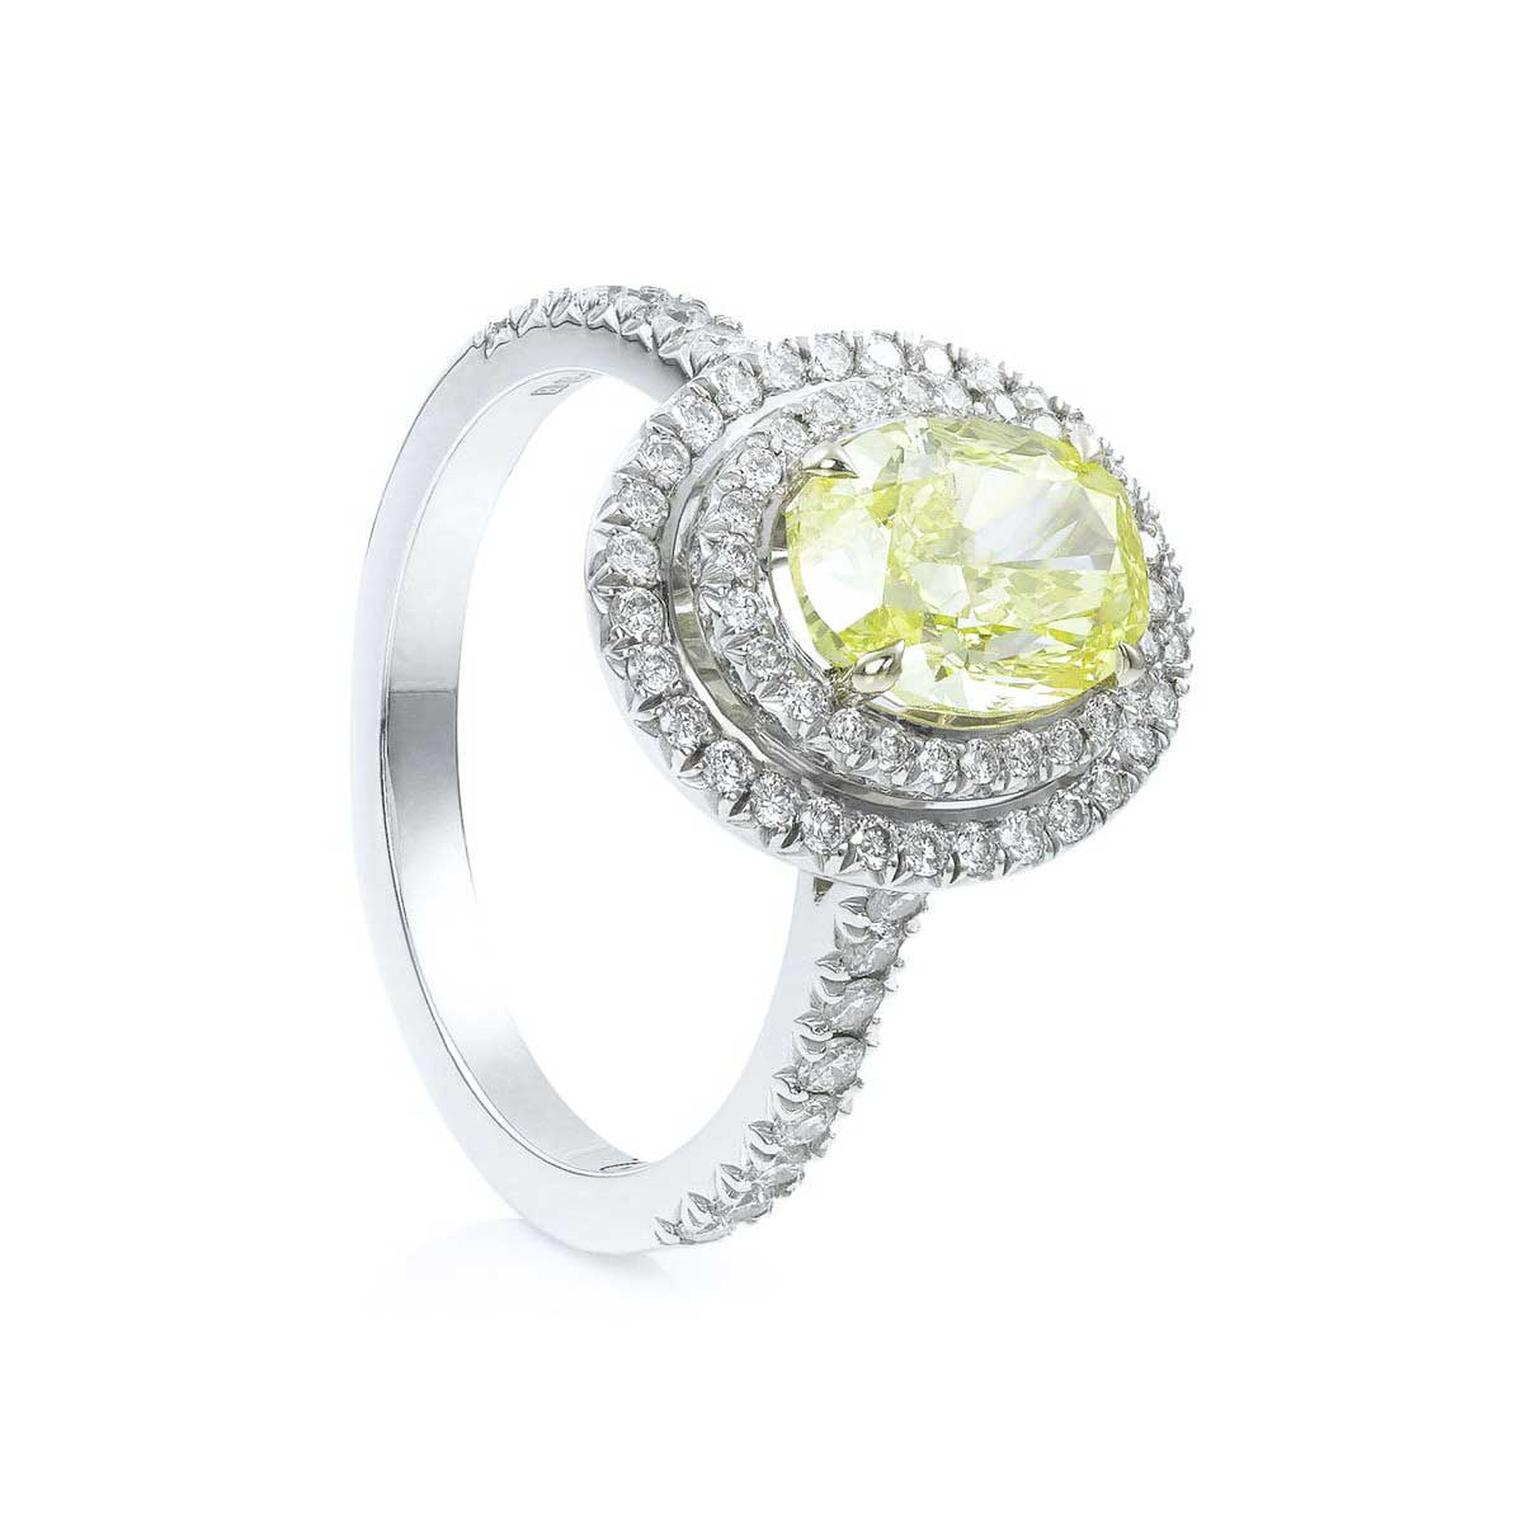 Boodles Vintage oval-cut yellow diamond ring